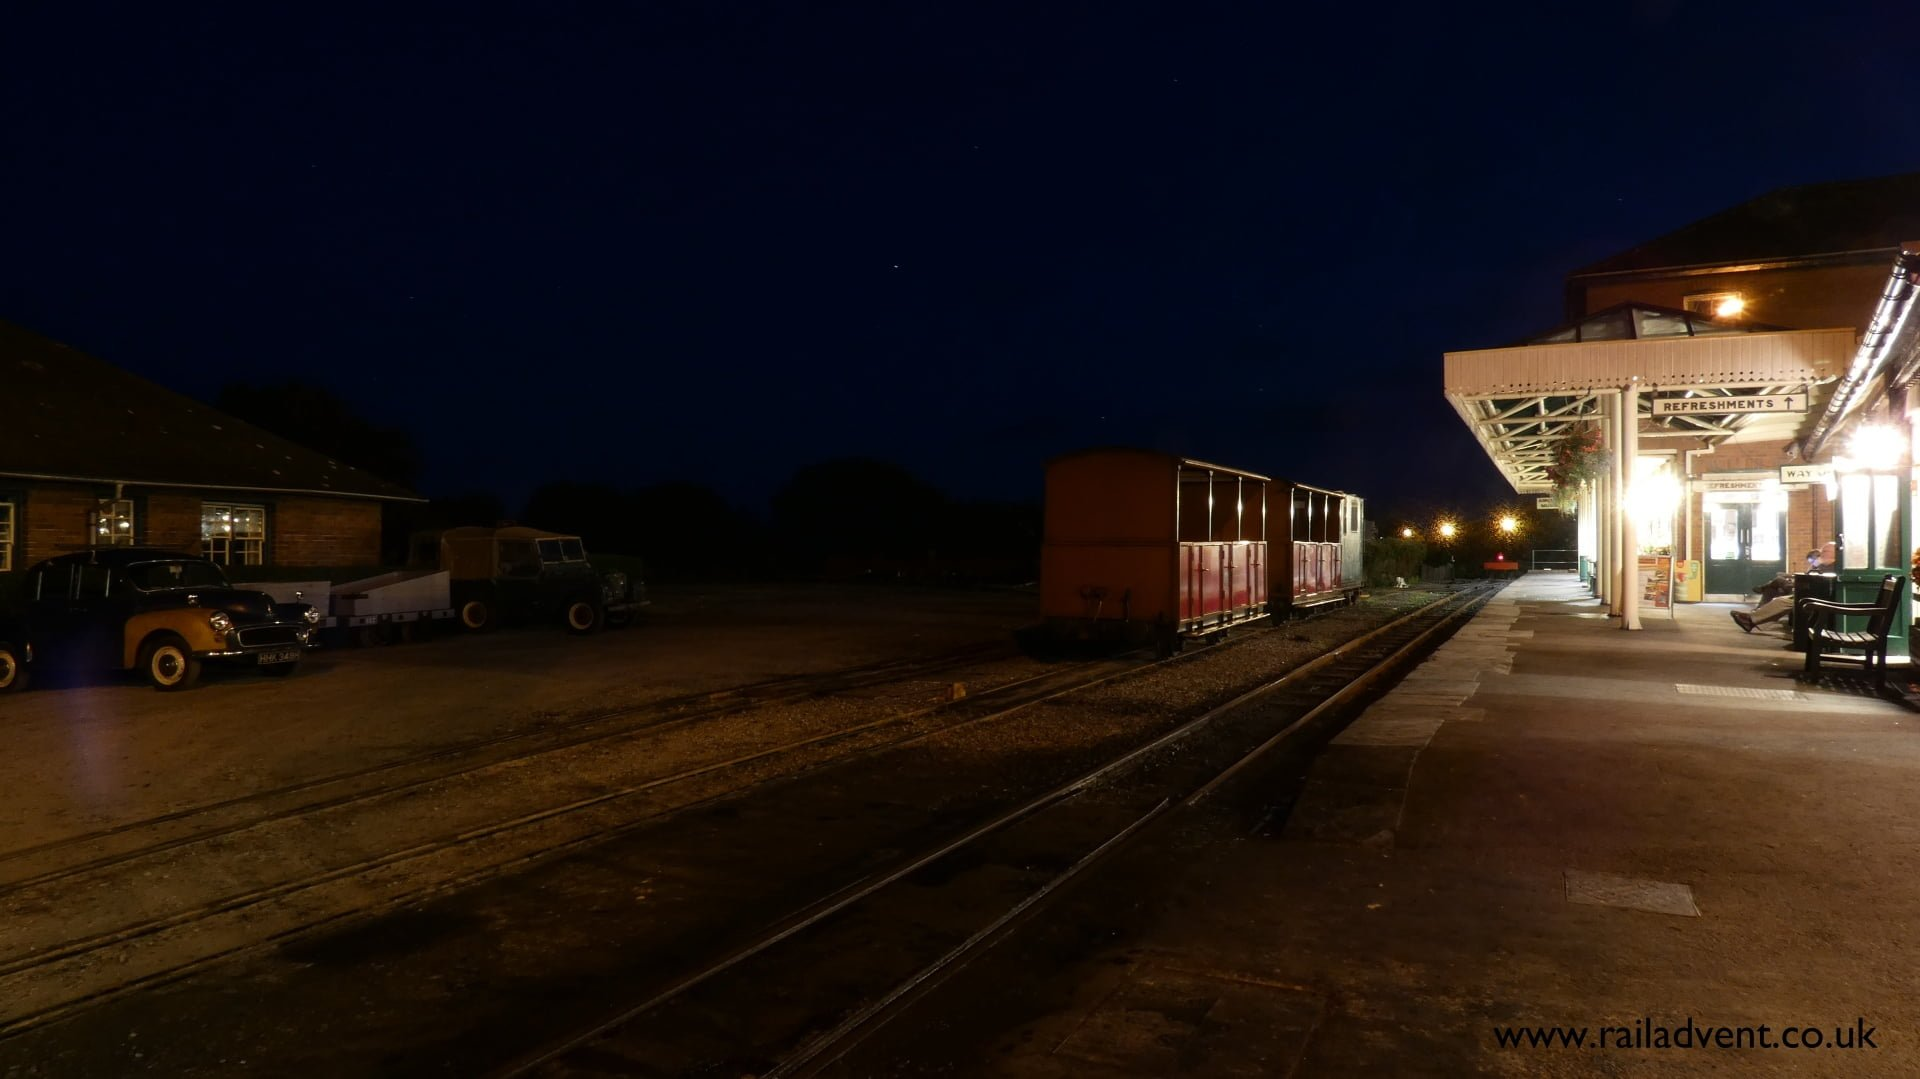 Talyllyn Open Carriages stand in the middle road during Talyllyn Steam at Night event